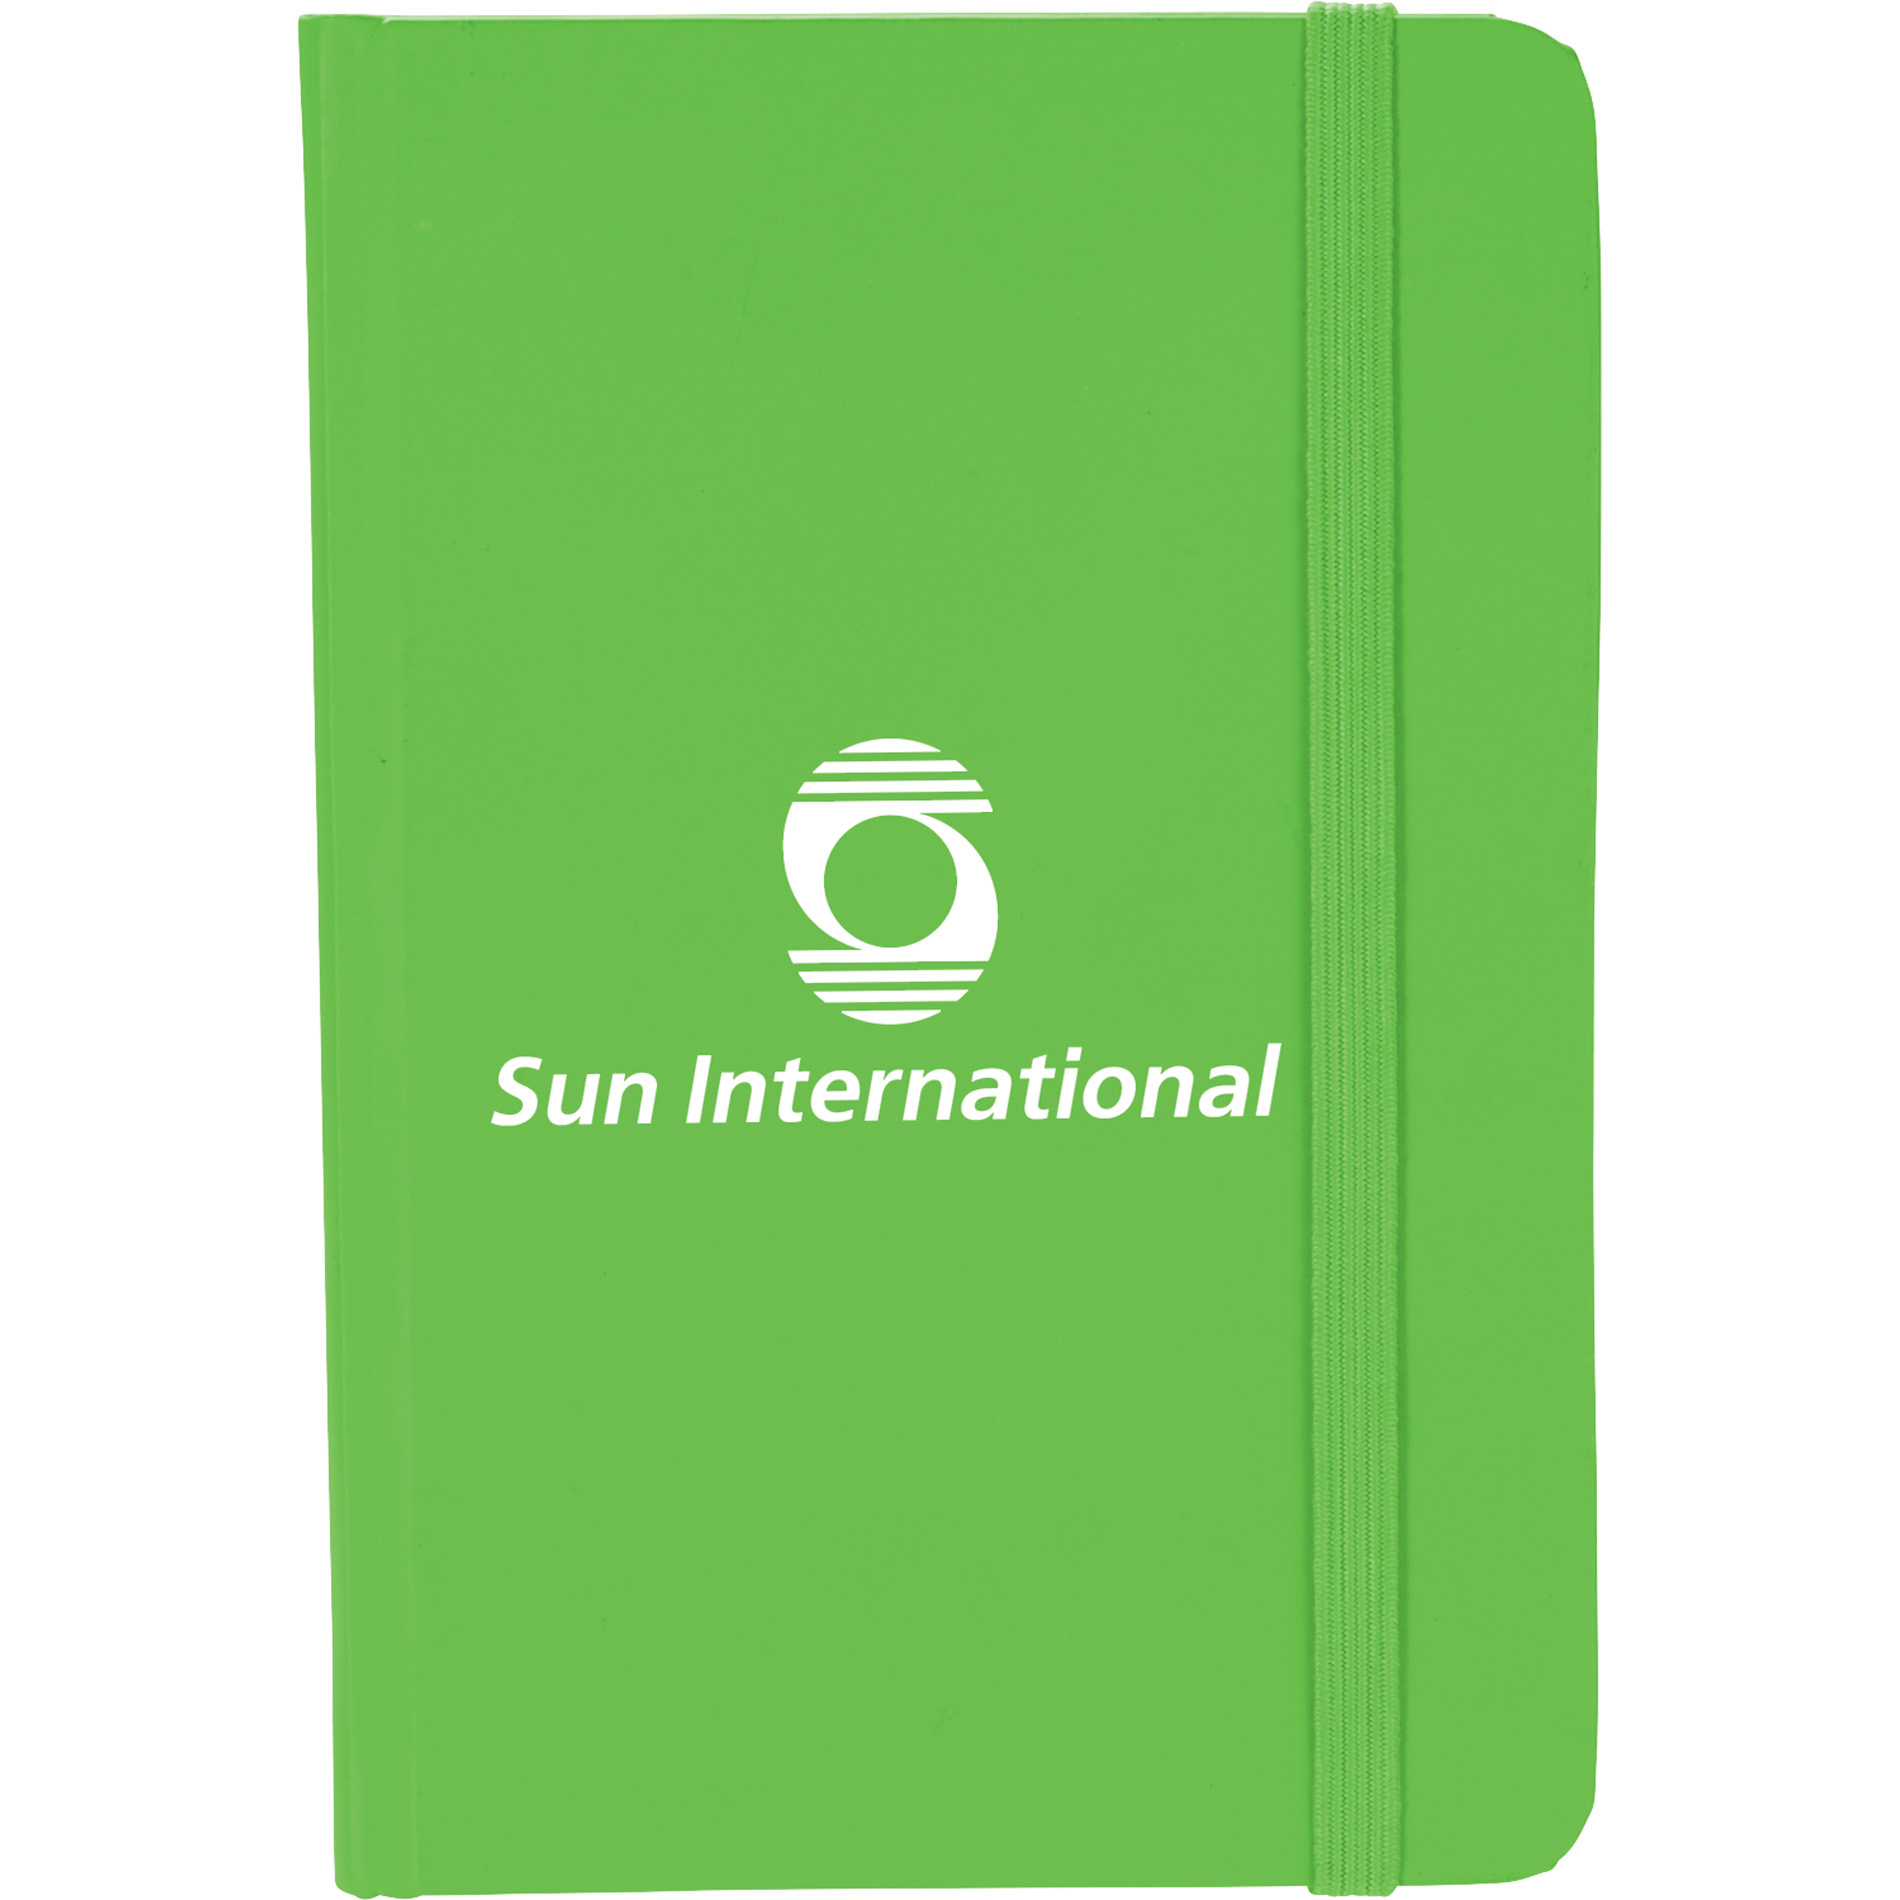 Rainbow Notebook - Small, SM-3416 - 1 Colour Imprint